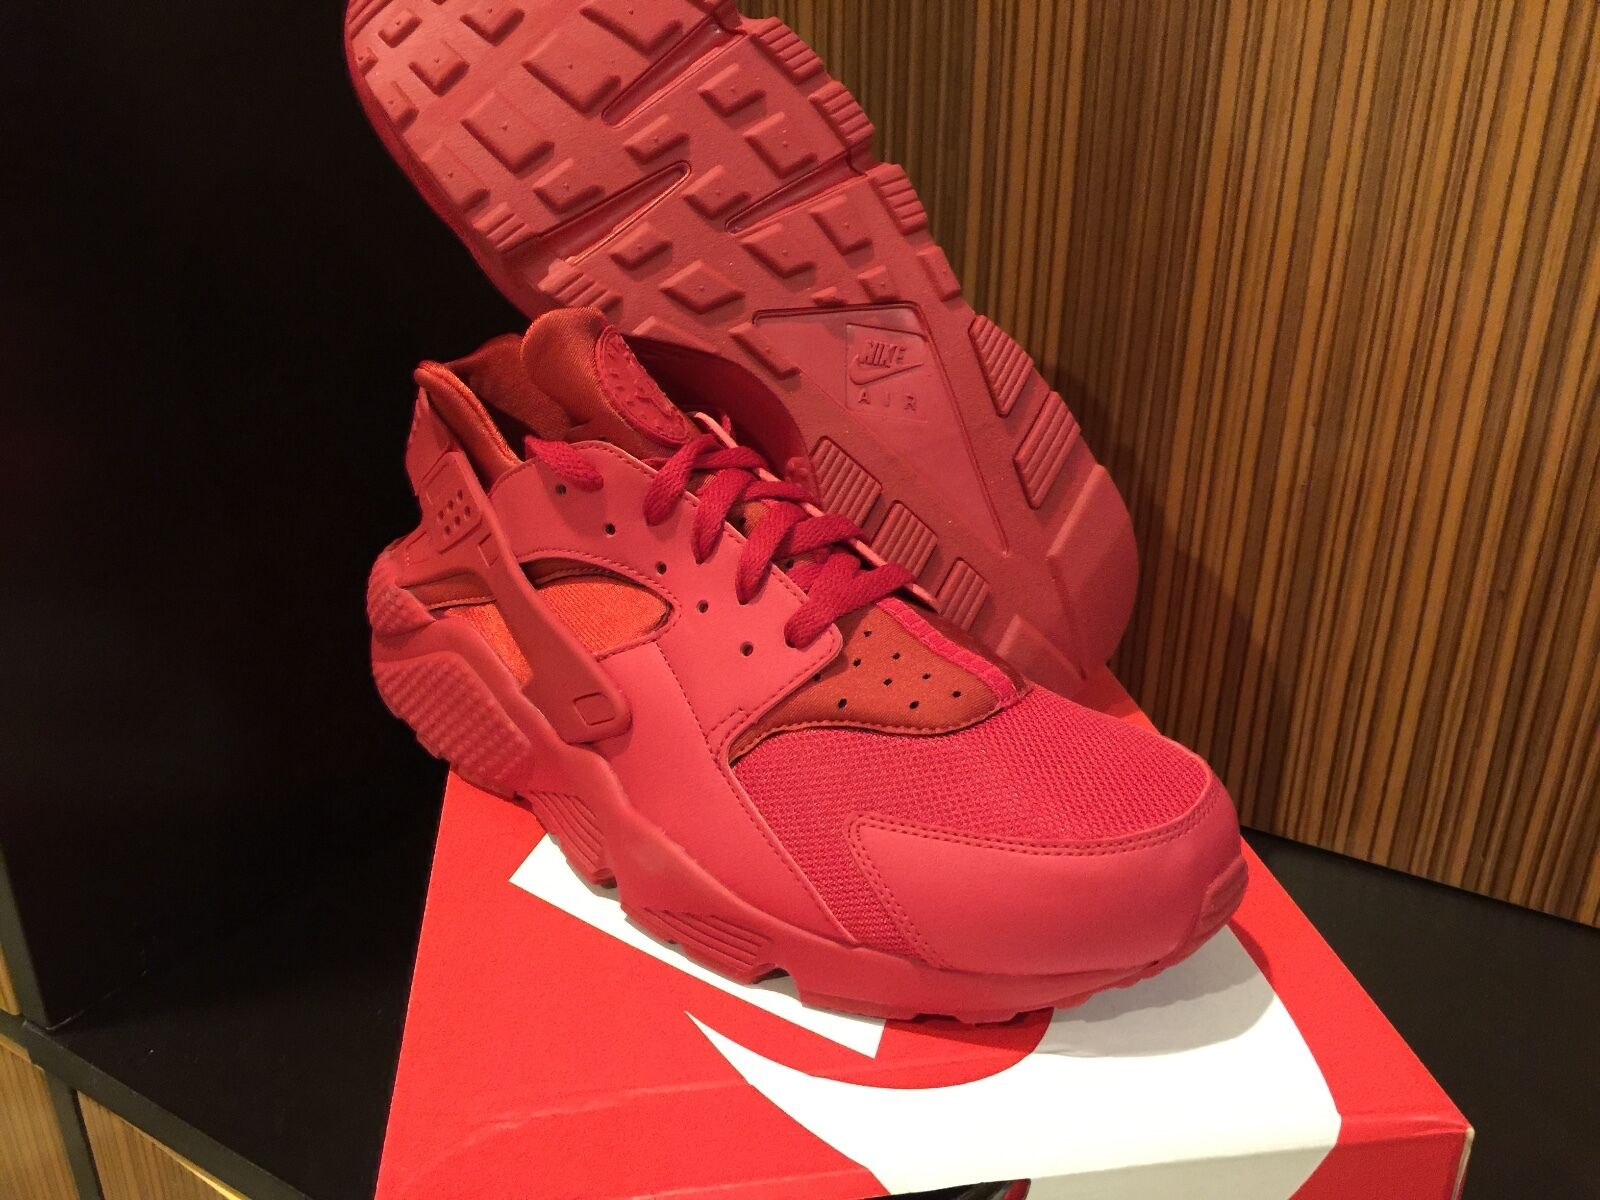 Nike Air Huarache Low All Red 8 - 14 Rainbow Sunset black wheat Gum Ostrich 12 1 Great discount